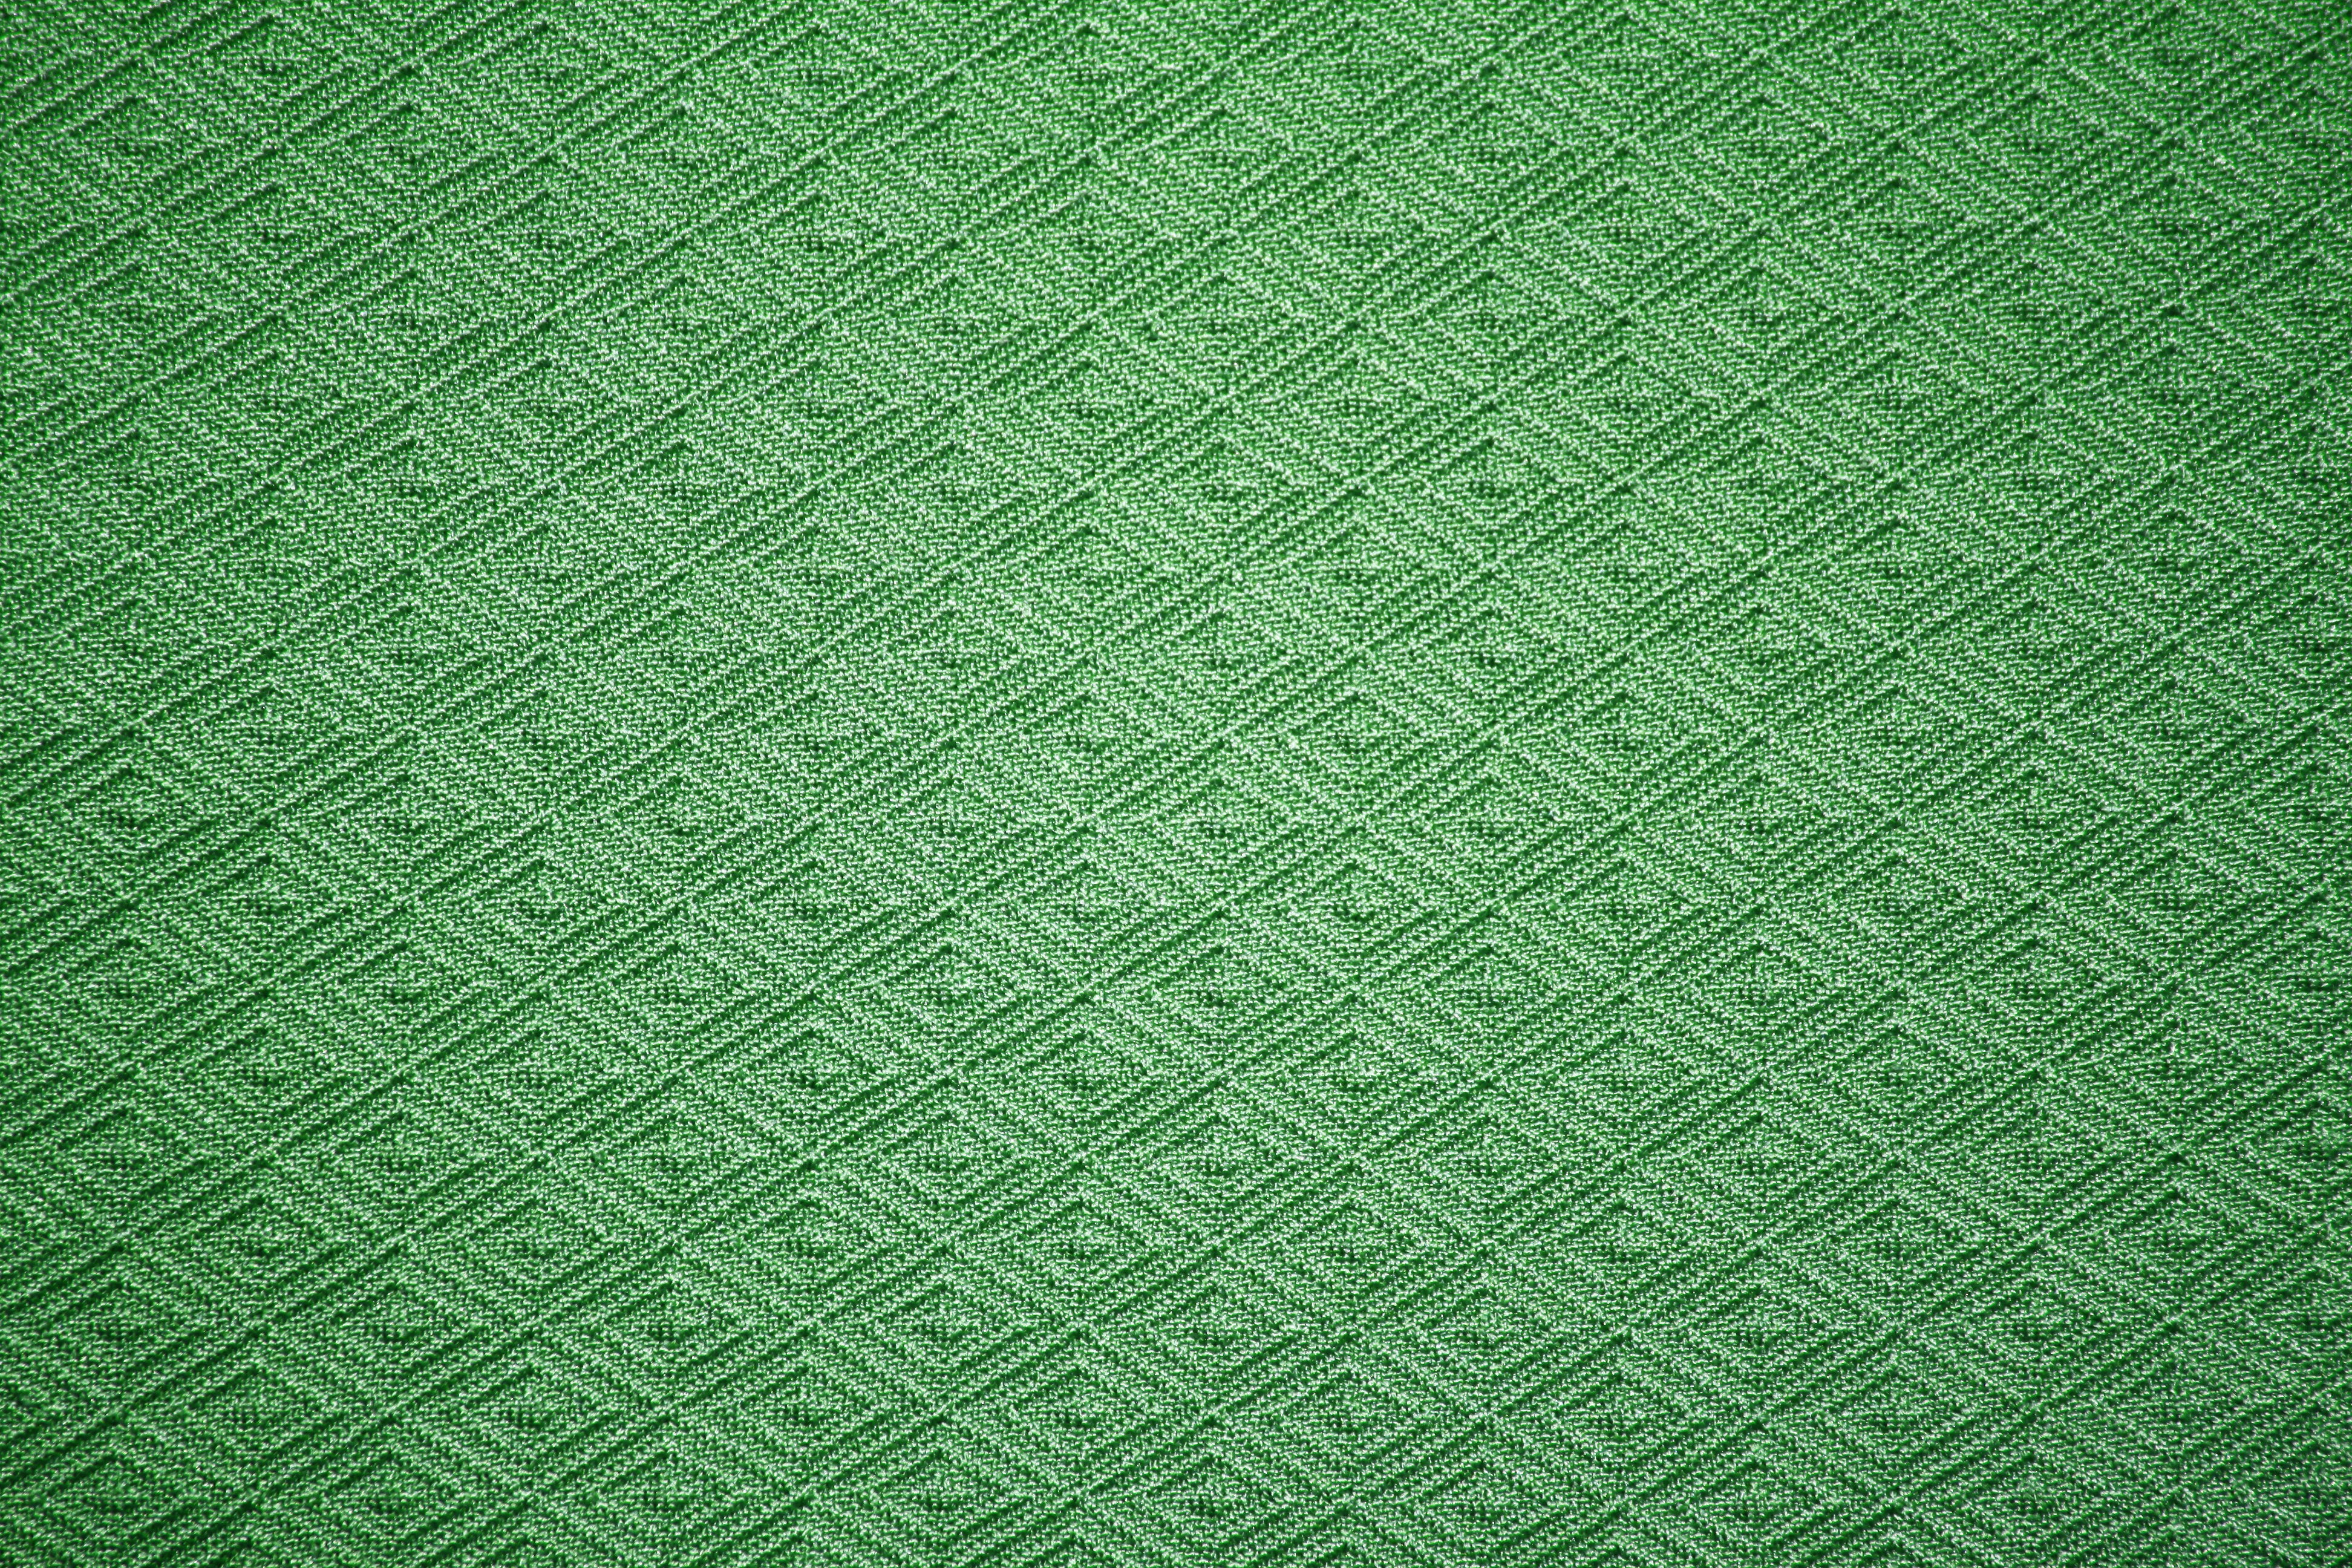 Green Knit Fabric with Diamond Pattern Texture Picture | Free ...